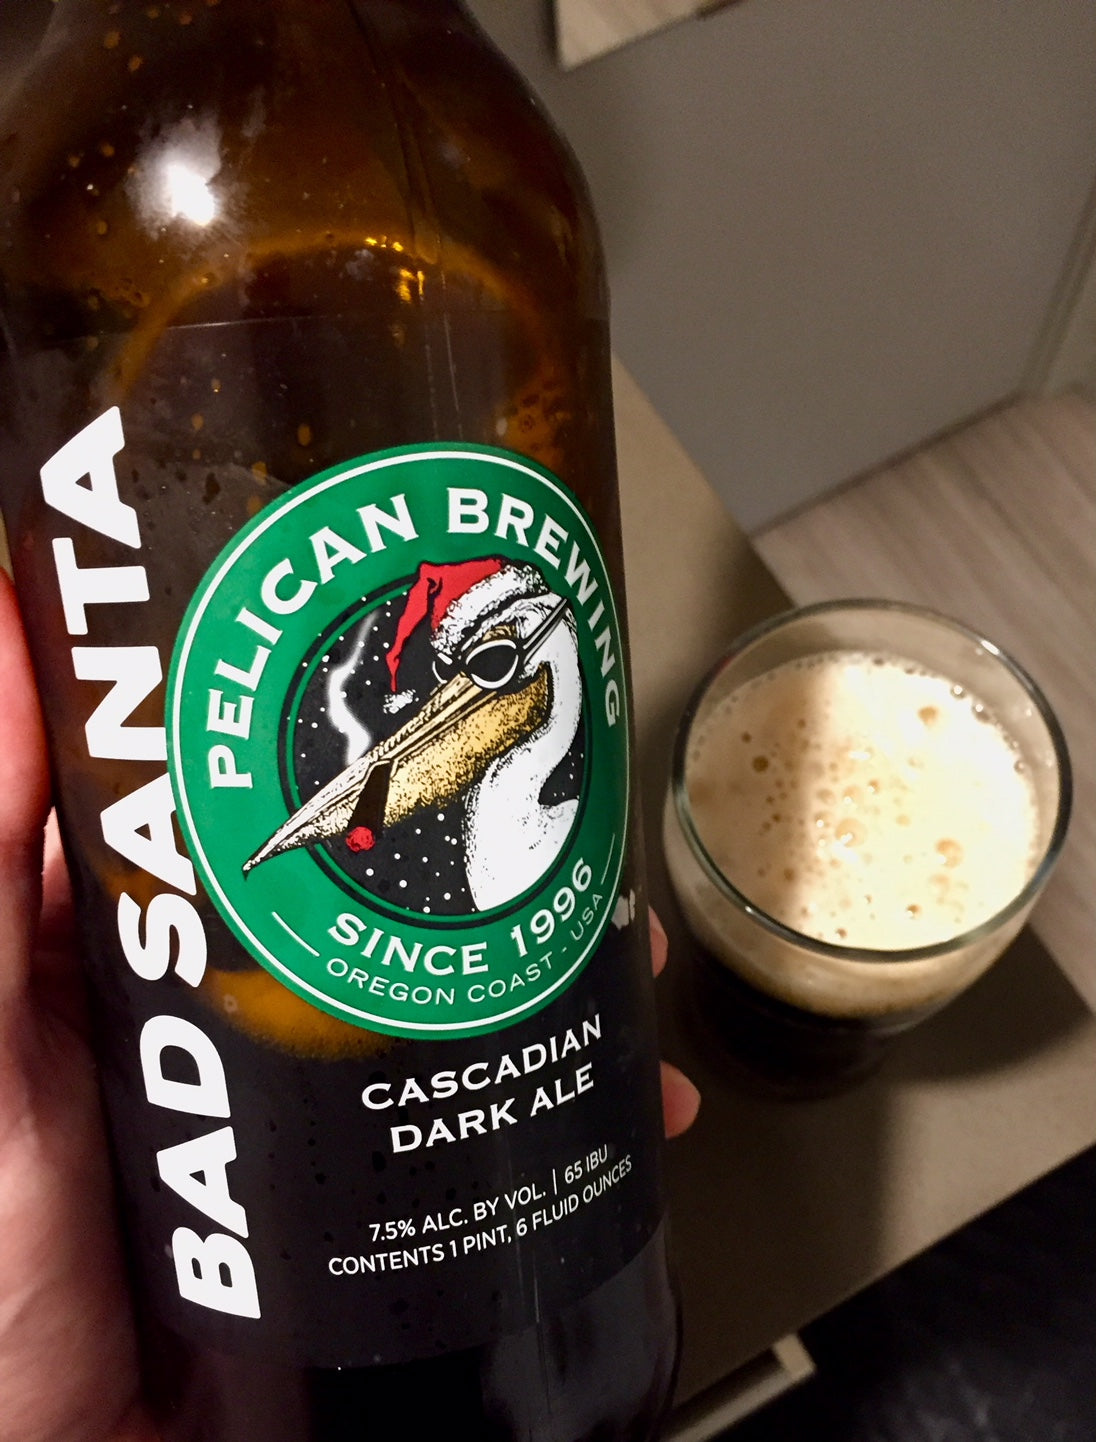 Pelican Brewing Bad Santa Cascadian Dark Ale